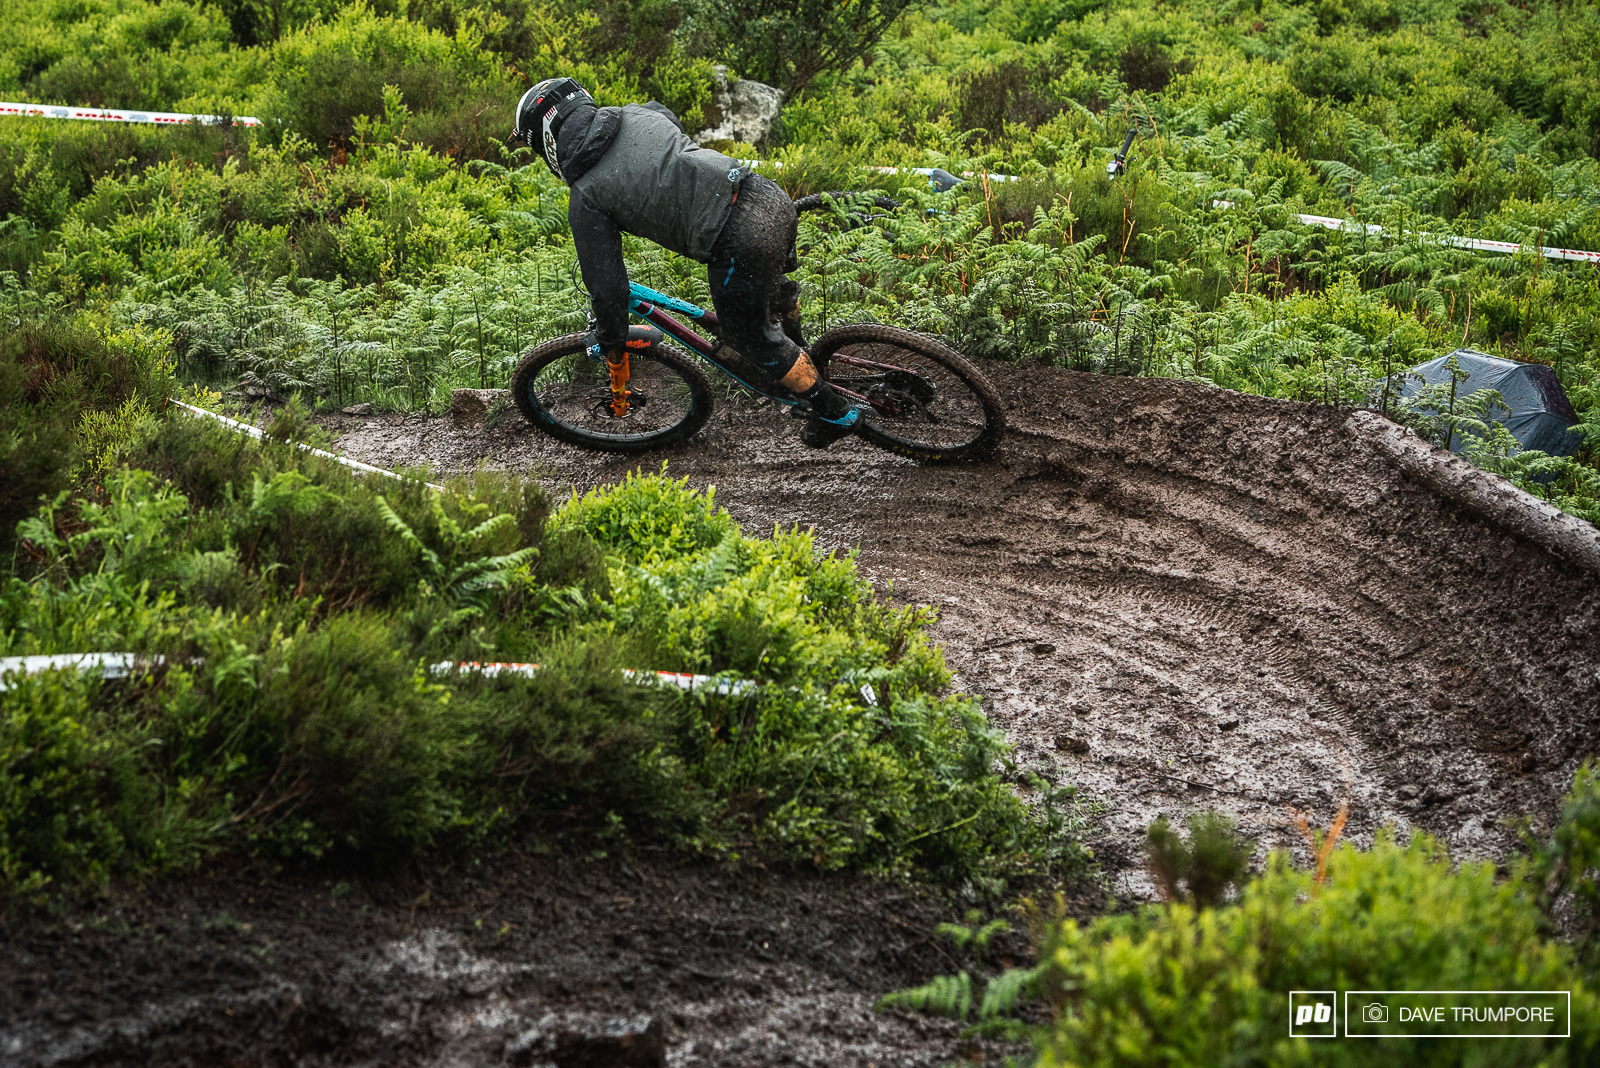 From dust to muddy ruts. What a difference a day and a few centimeters of rain makes.